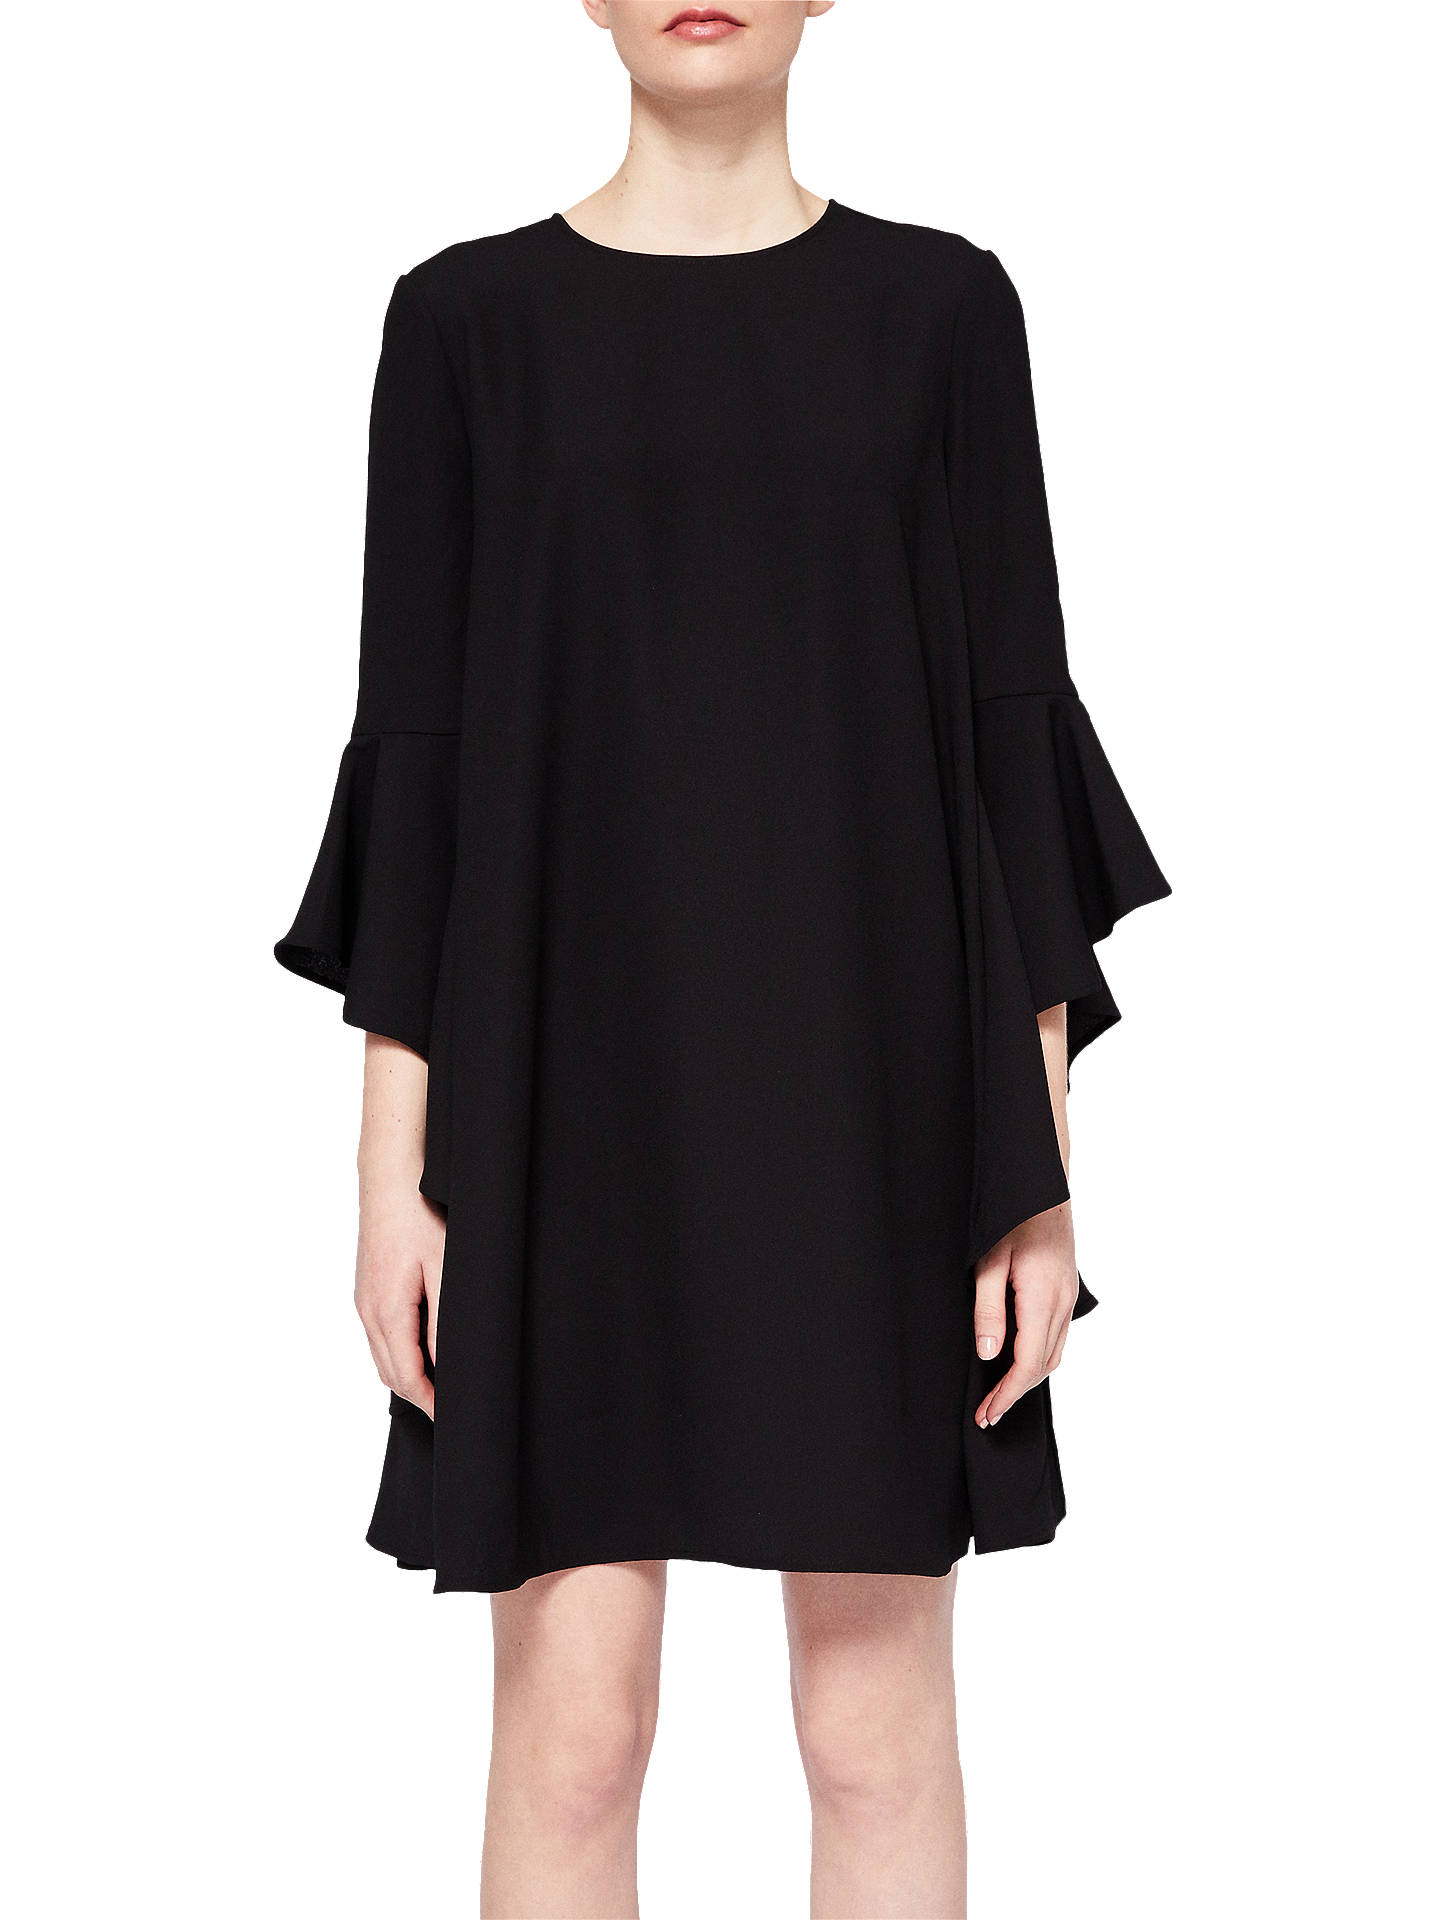 a932bc1d5 ... Buy Ted Baker Ashleyy A-Line Waterfall Sleeve Dress